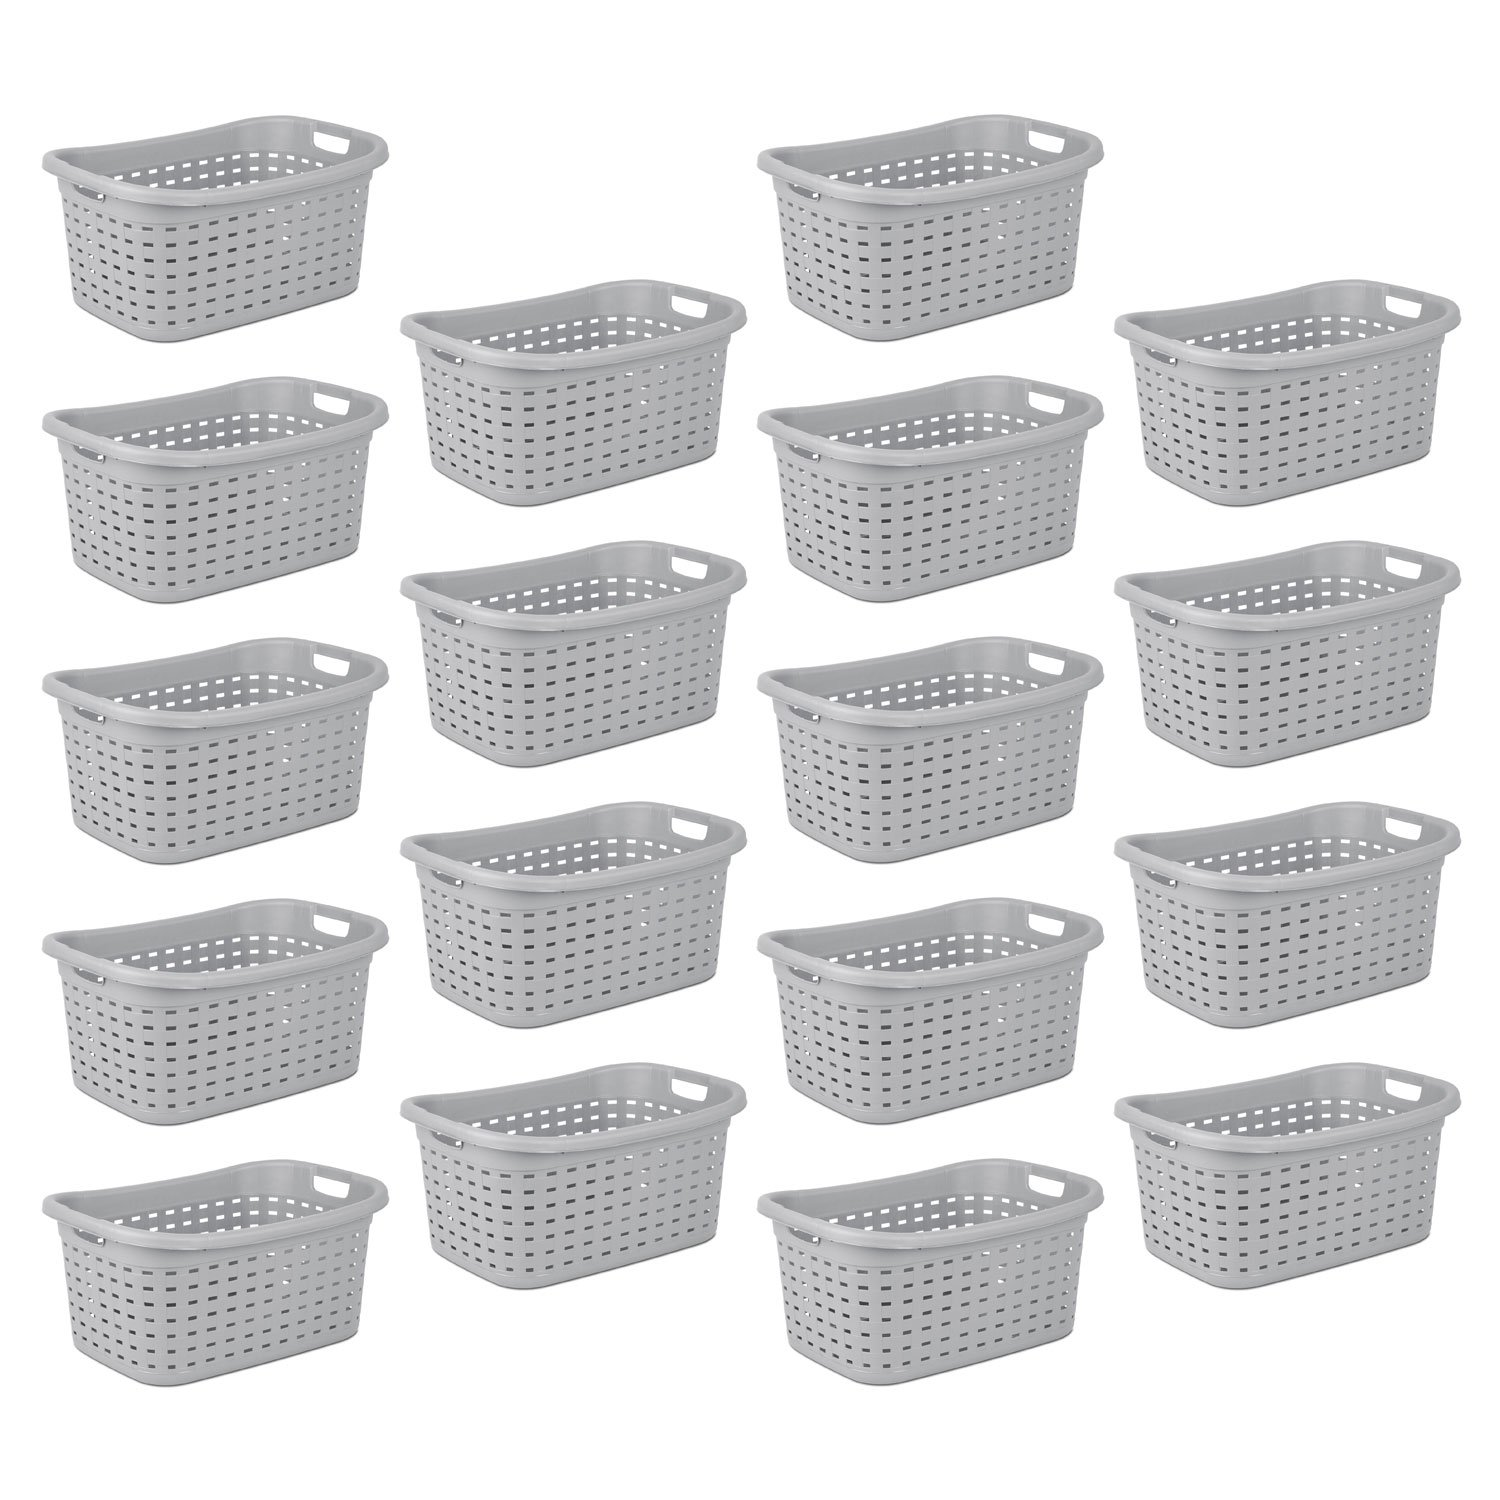 STERlLITE 12756A06 Weave Laundry Basket, Cement, 18-Baskets by STERlLITE